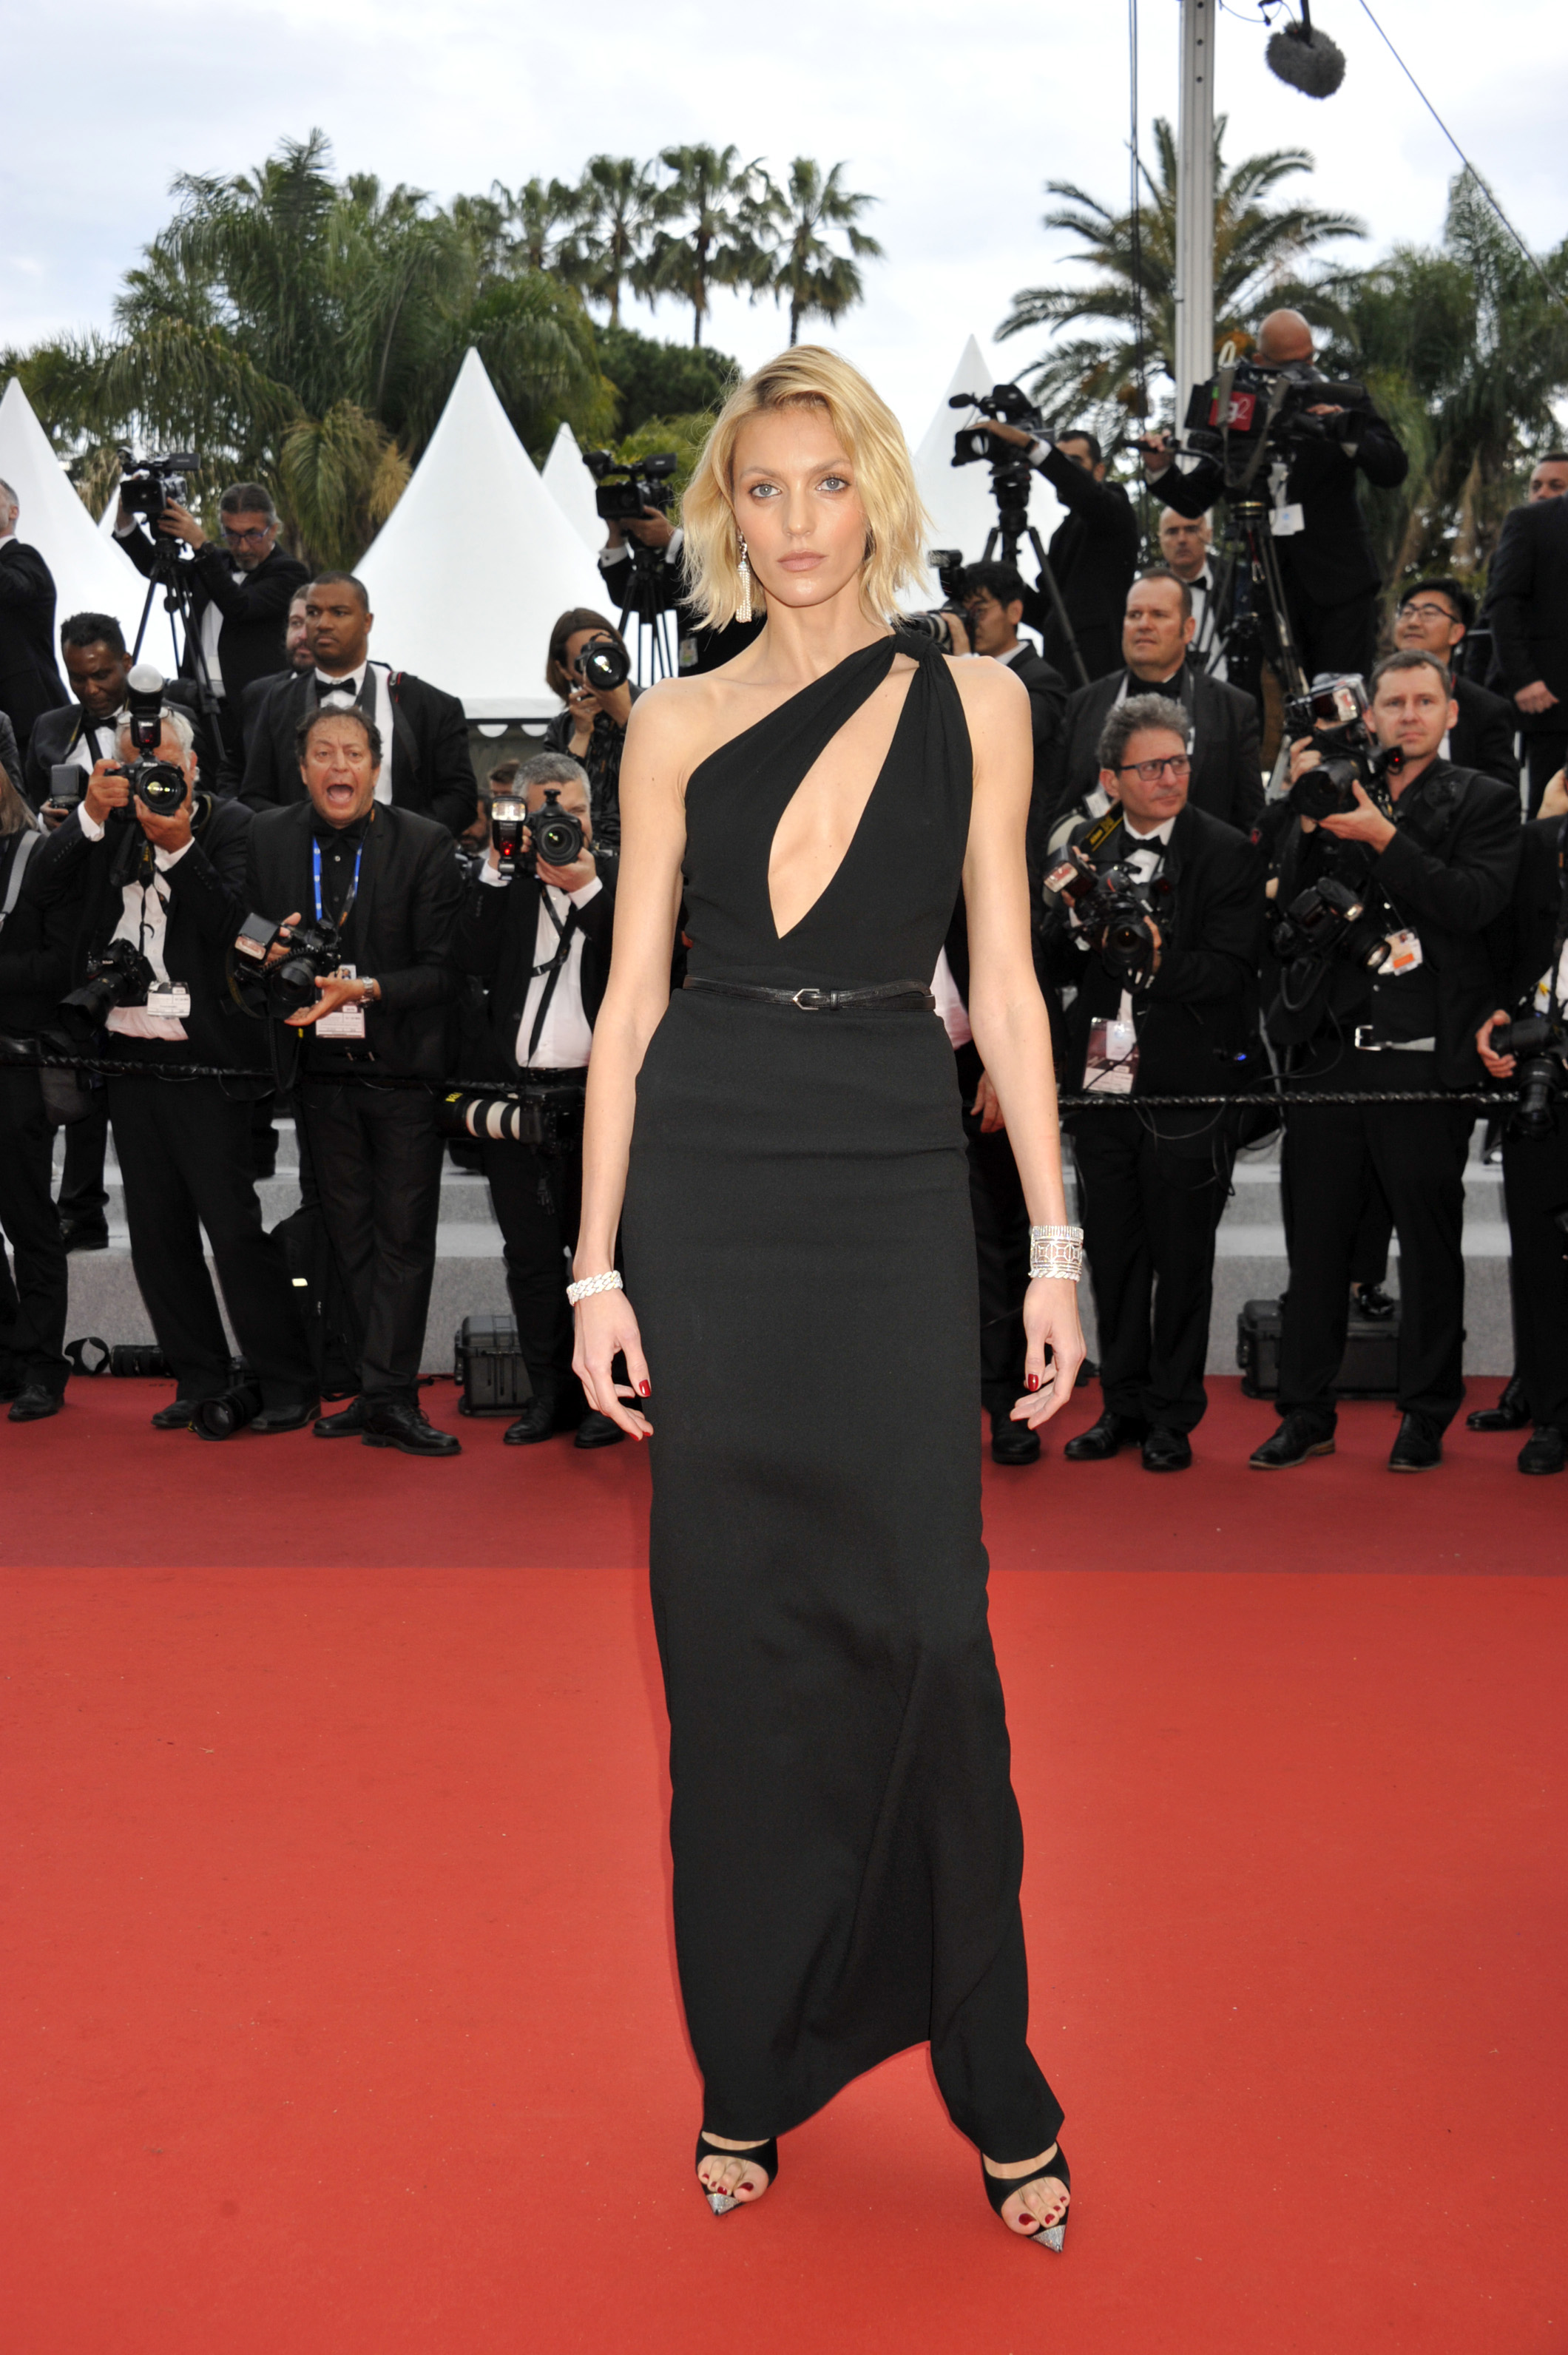 72nd Cannes Film Festival 2019, Red Carpet film A Hidden Life